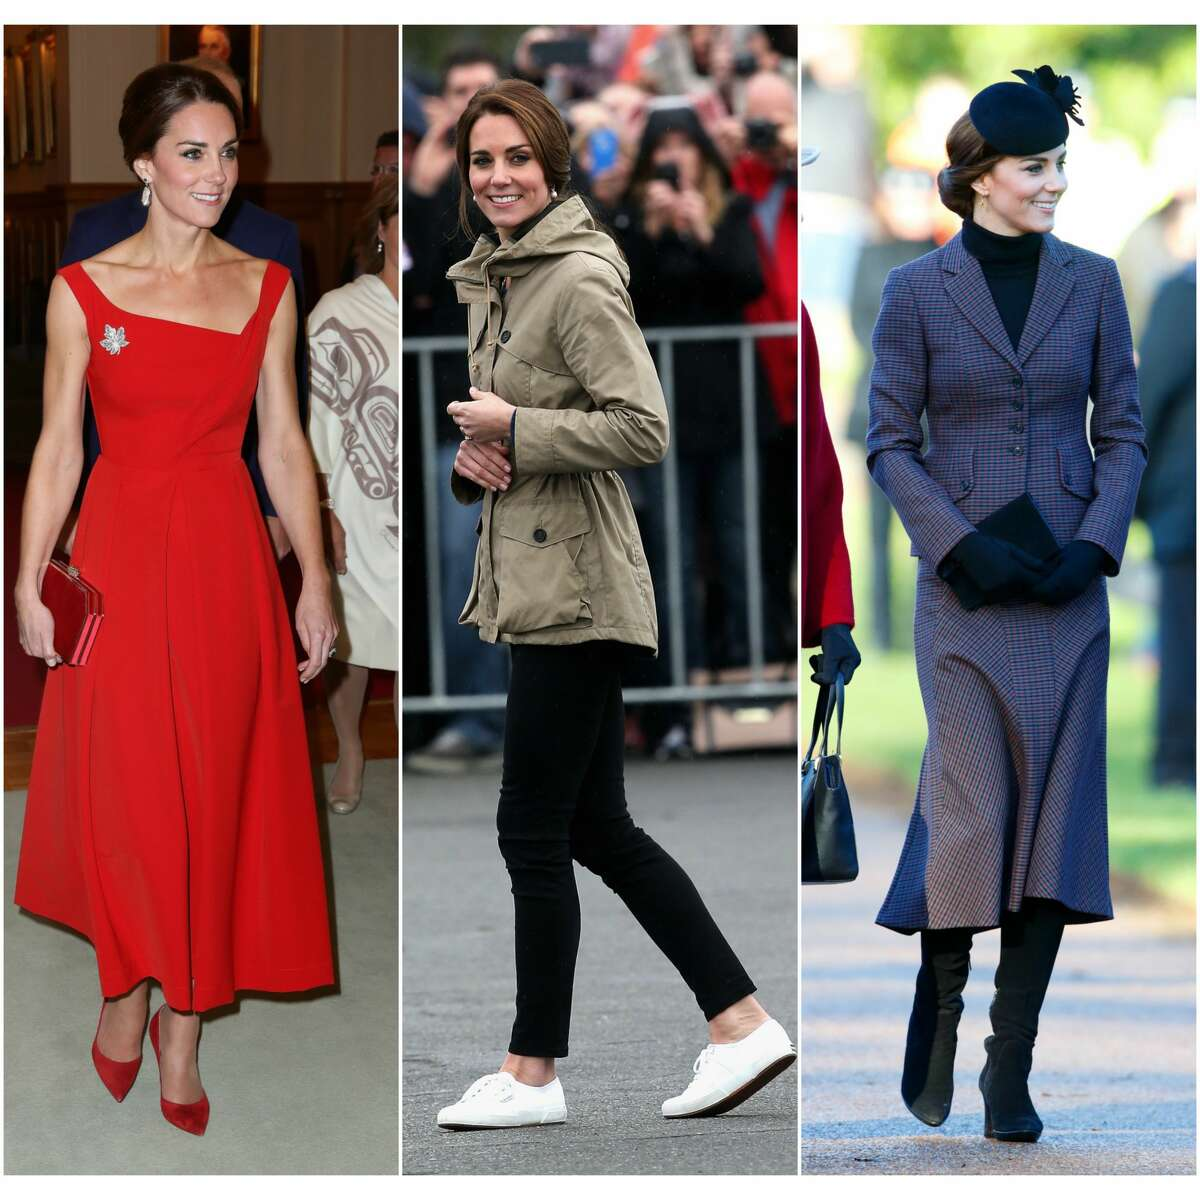 >> Keep clicking to see more of the Duchess of Cambridge's best 2016 fashion moments.